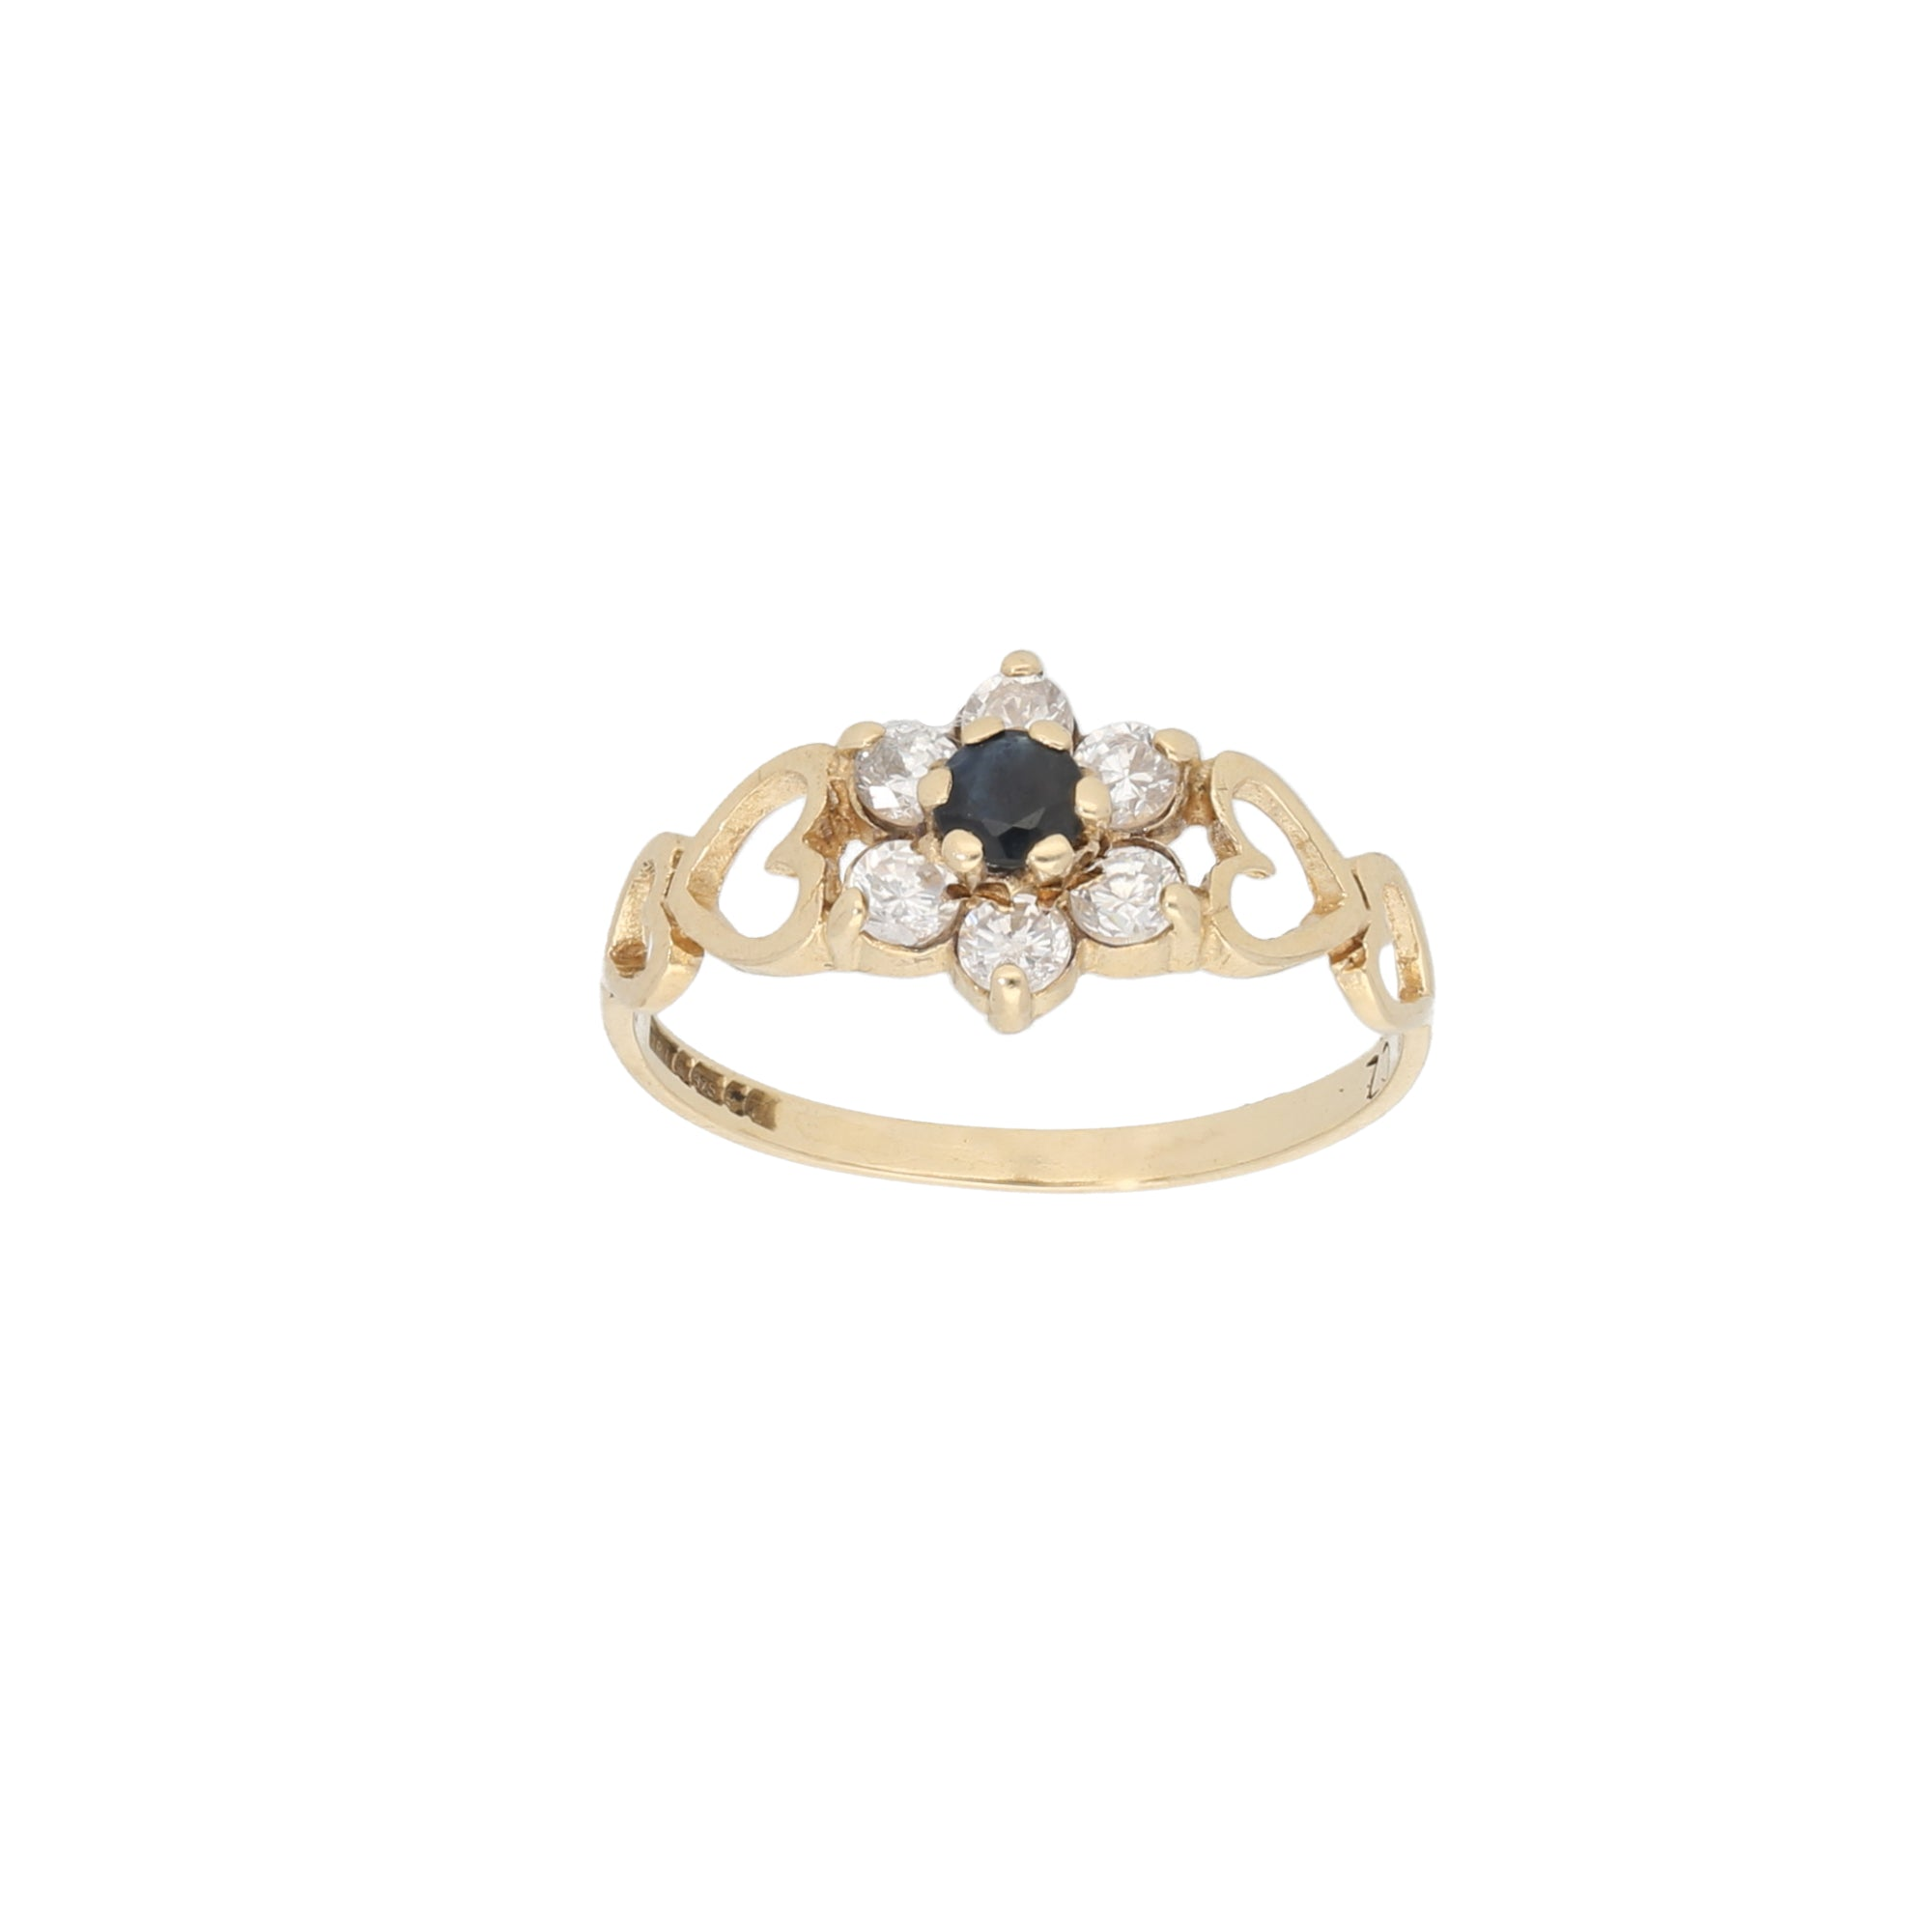 9ct Gold Sapphire & Cubic Zirconia Ladies Dress Cocktail Ring Size M